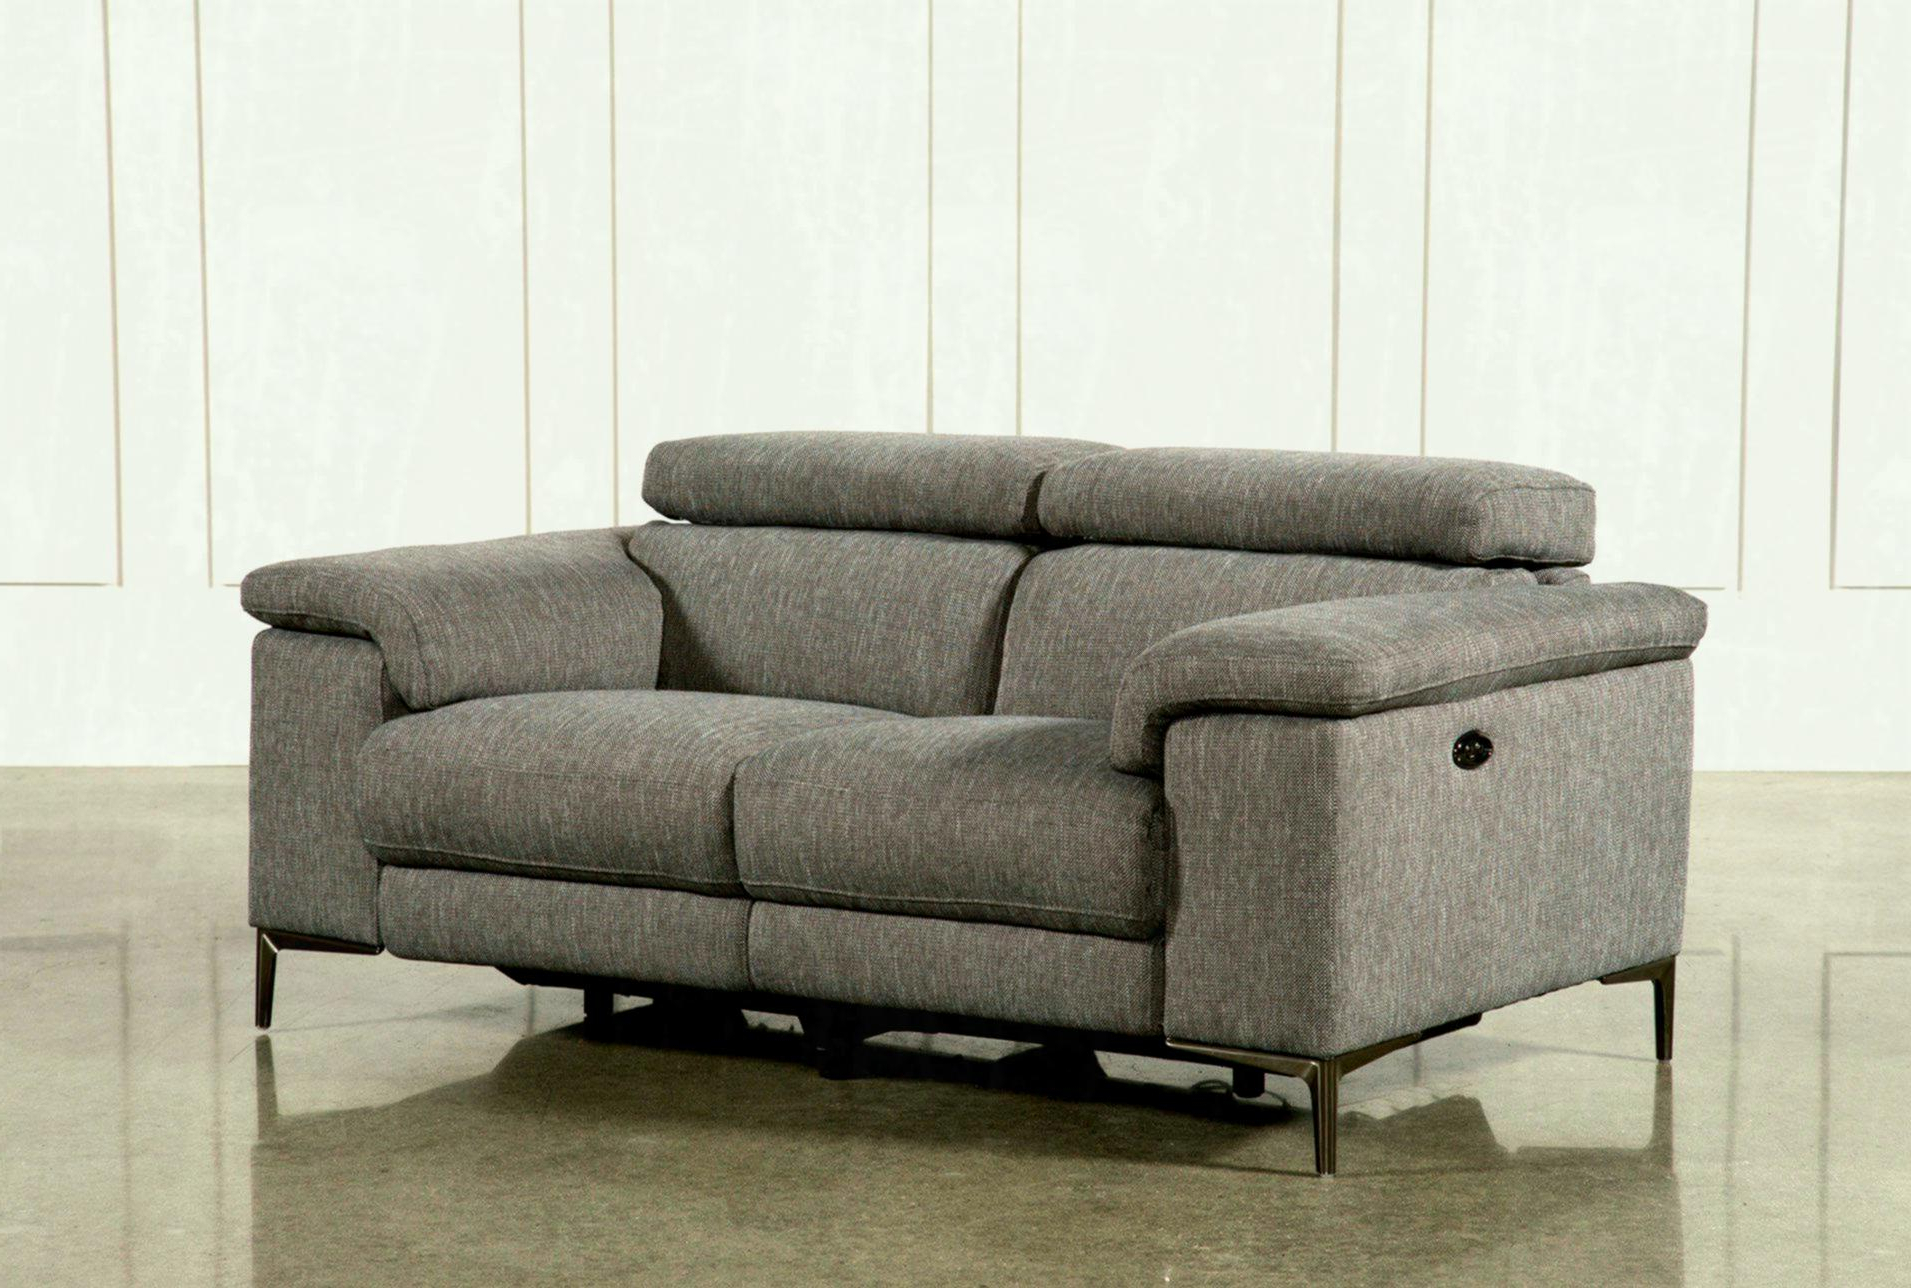 Well Known Aquarius Light Grey 2 Piece Sectionals With Raf Chaise Regarding Added To Cart Aquarius Light Grey Piece Sectional W Raf Chaise (View 11 of 20)